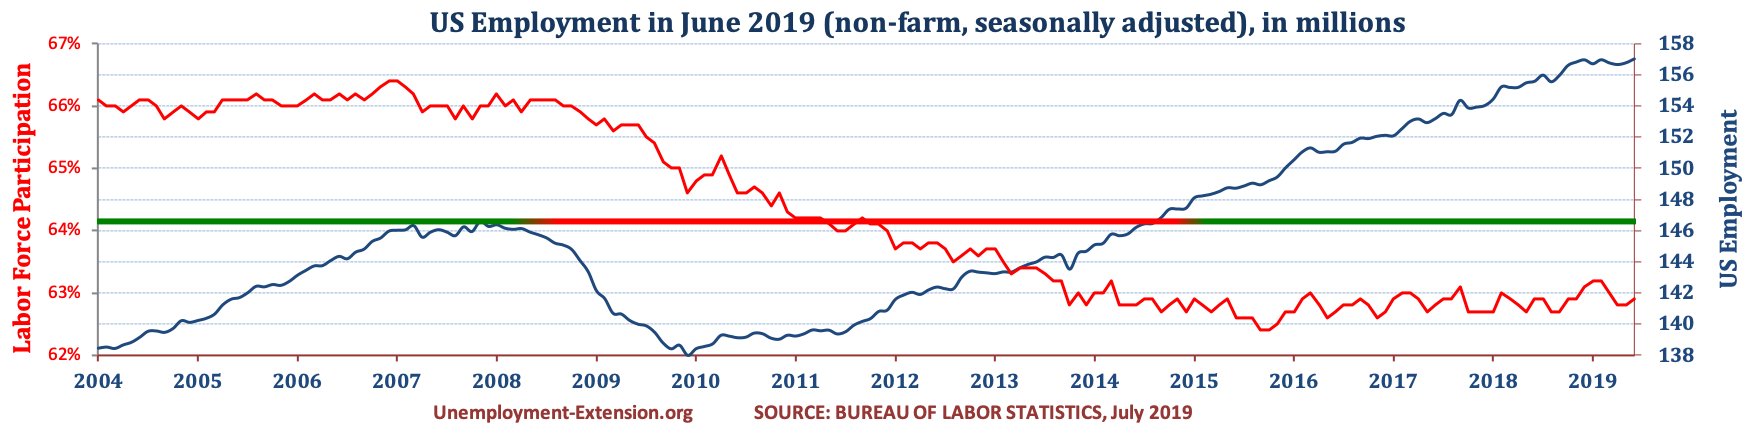 Total US Employment (non-farm, seasonally adjusted) in June of 2019. US economy has lost approximately 10 million jobs in comparison to pre-resession level.